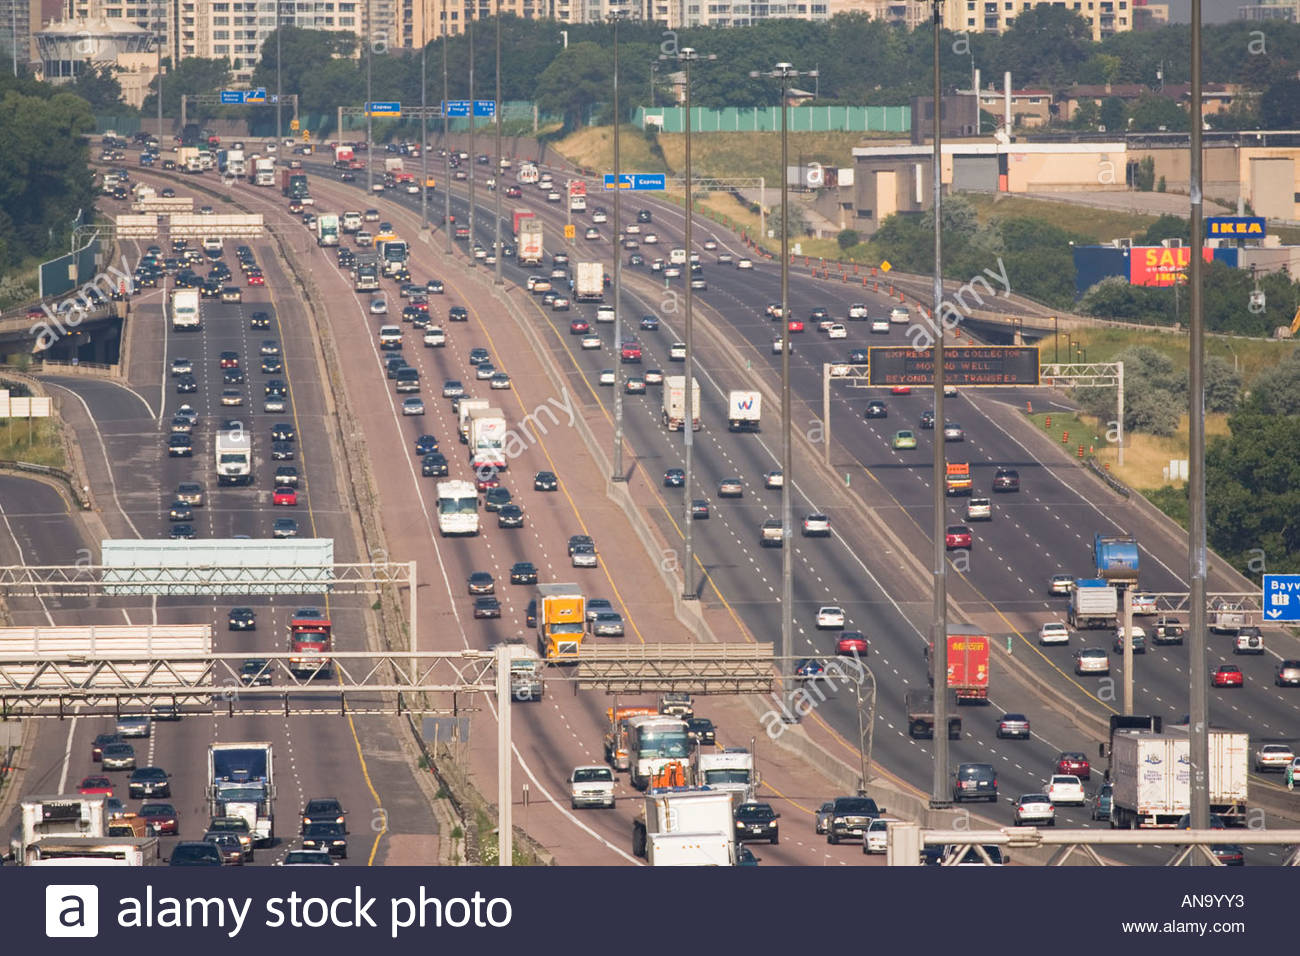 14 lanes of traffic on highway 401 in Toronto Ontario Canada Stock Photo